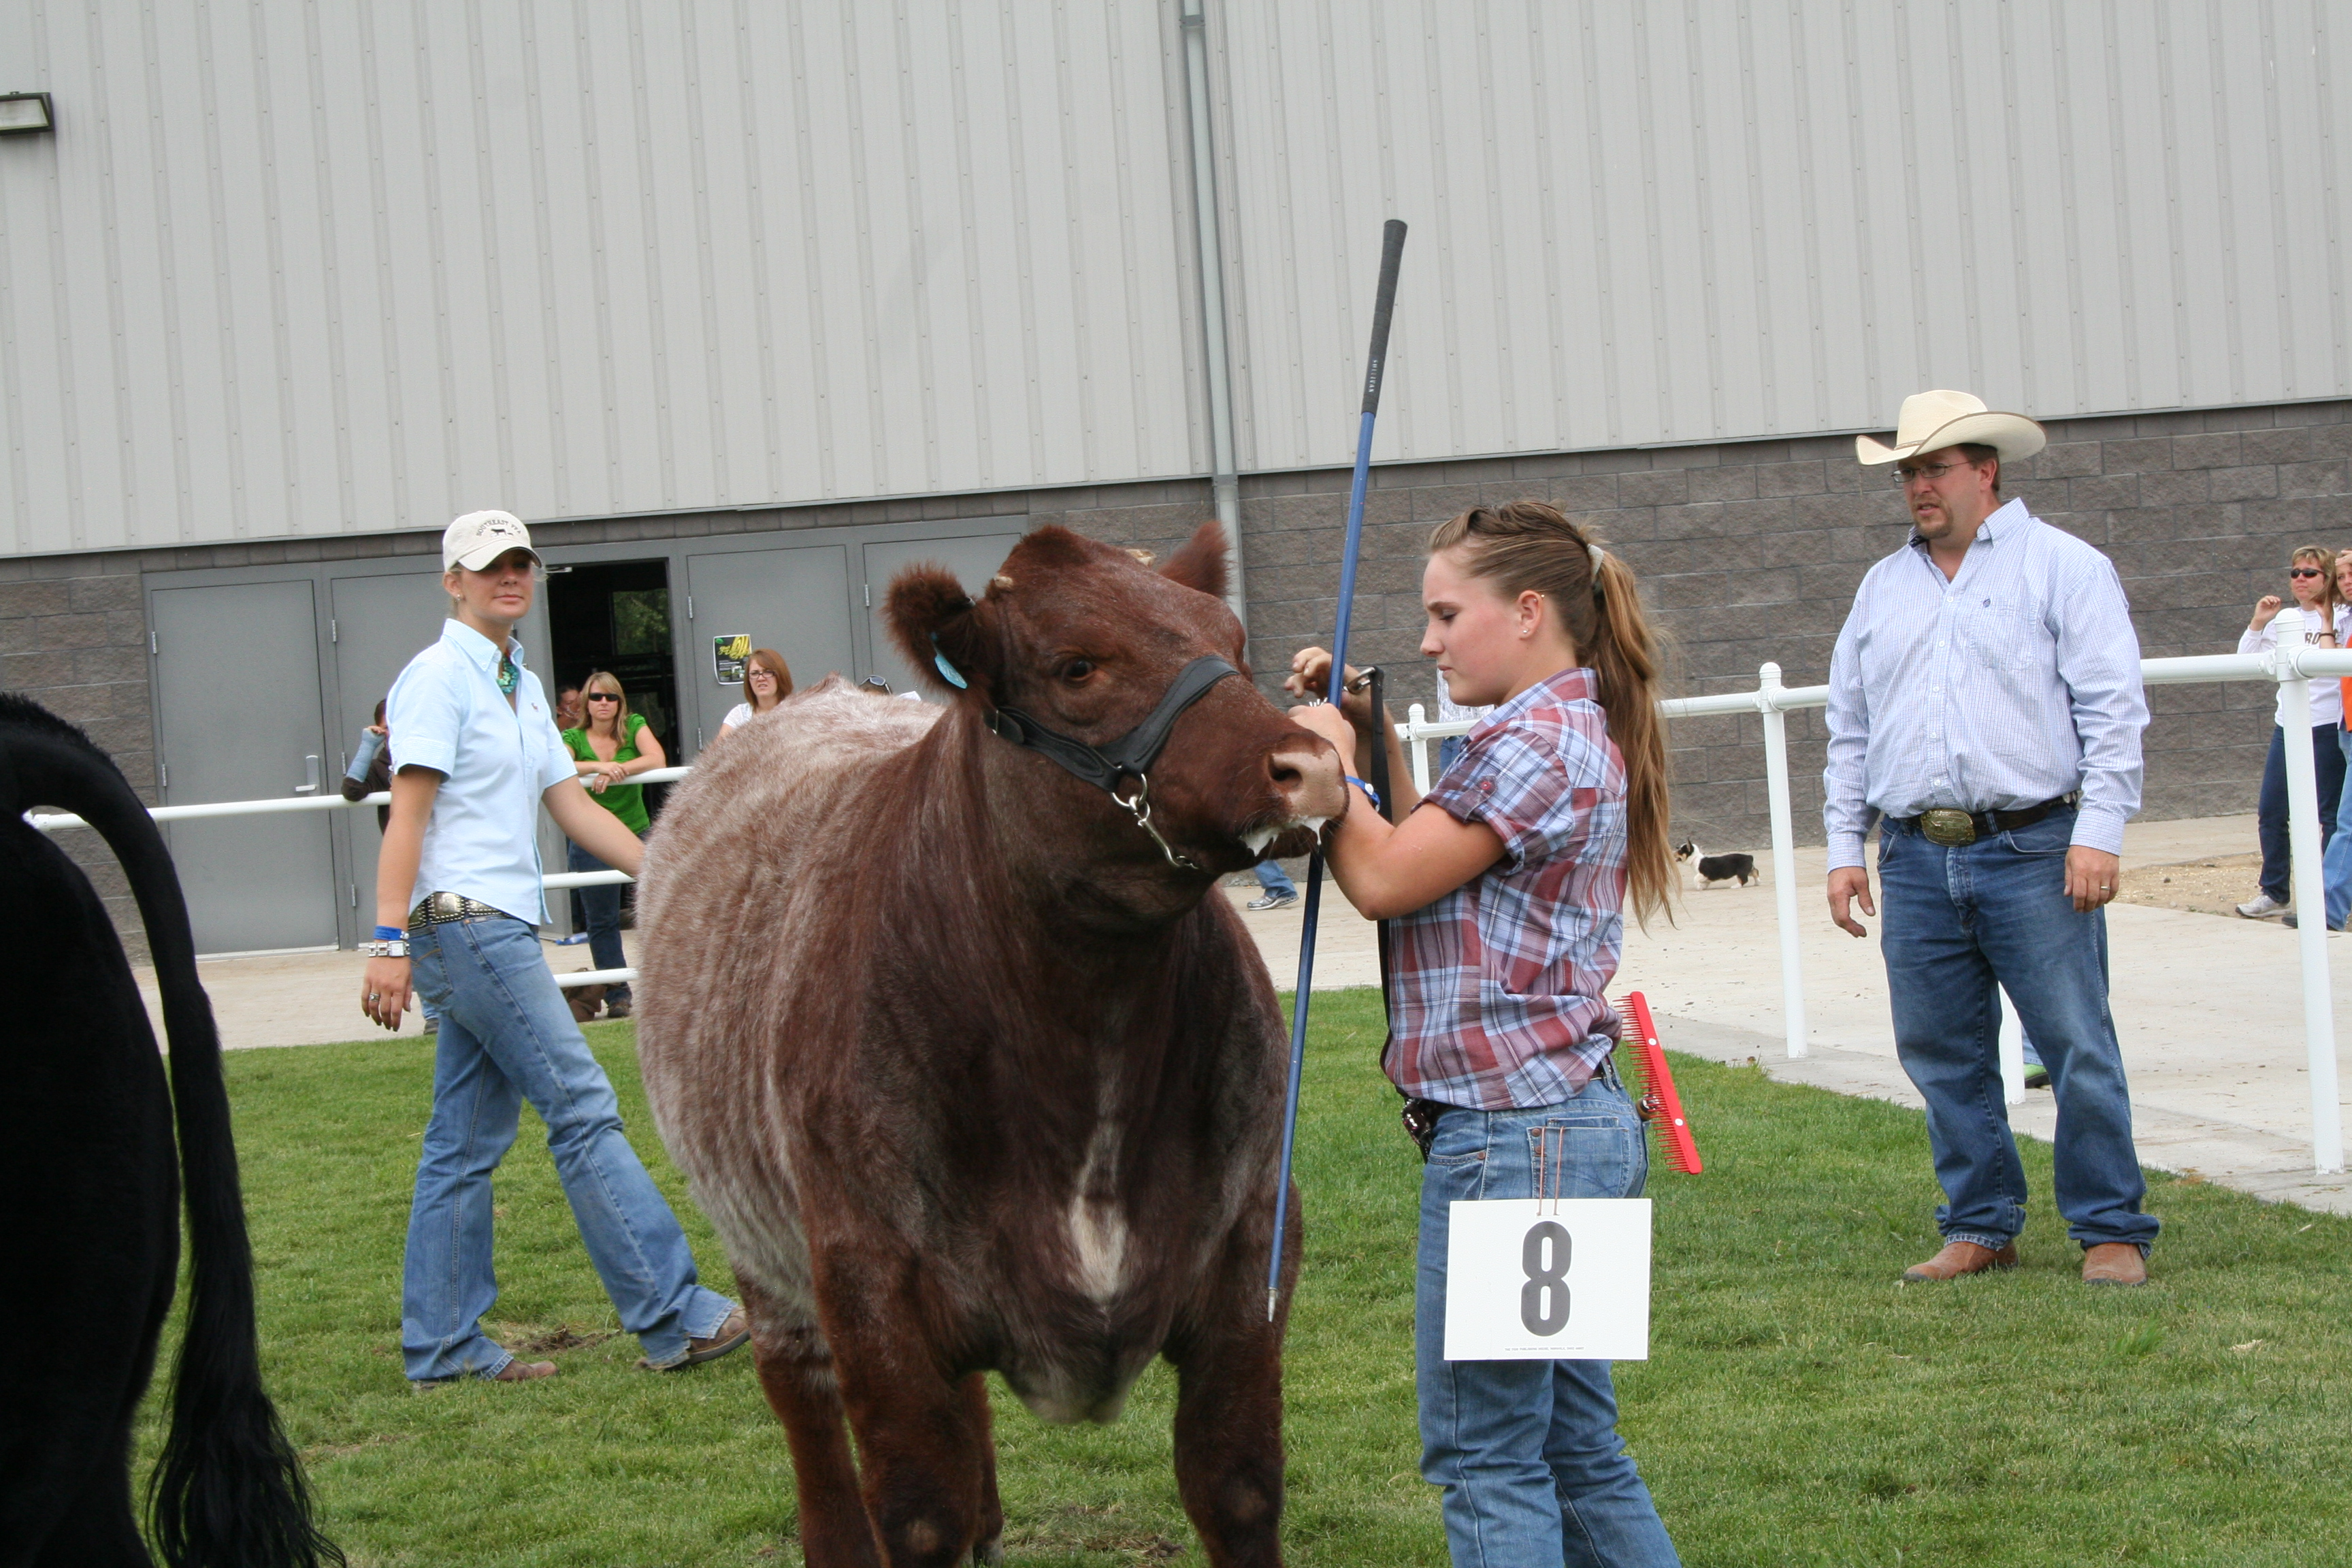 Young girl with a steer.